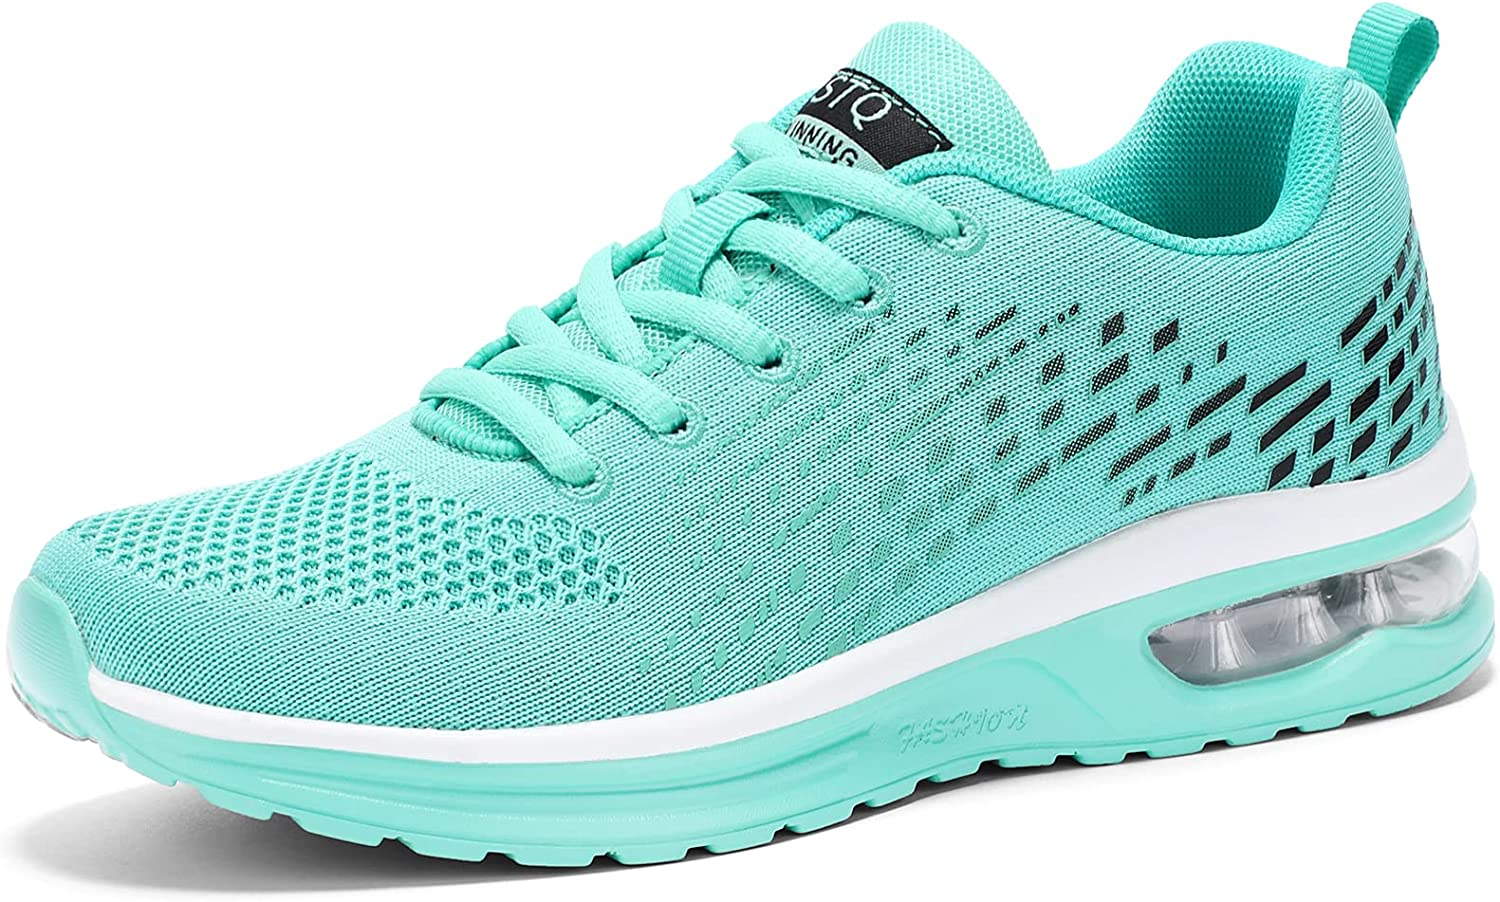 overseas STQ Women's Running Shoes Air Cushion Breathable Sneakers Max 81% OFF